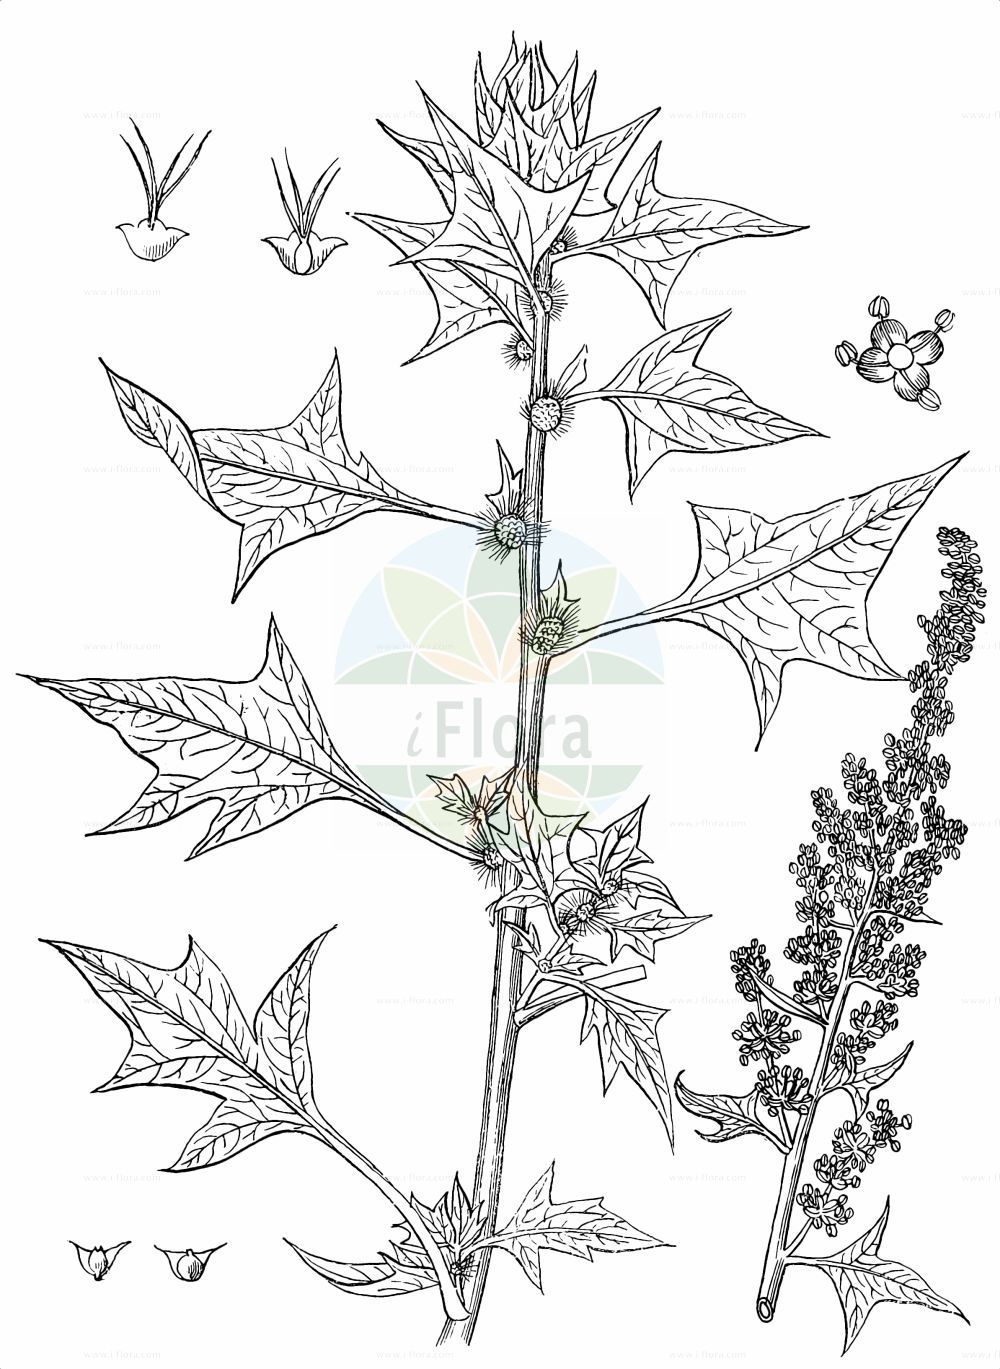 Historische Abbildung von Spinacia oleracea. Das Bild zeigt Blatt, Bluete, Frucht und Same. ---- Historical Drawing of Spinacia oleracea.The image is showing leaf, flower, fruit and seed.(Spinacia oleracea,Spinacia glabra,Spinacia inermis,Spinacia oleracea,Spinacia spinosa,Spinacia,Amaranthaceae,Fuchsschwanzgewaechse,Pigweed family,Blatt,Bluete,Frucht,Same,leaf,flower,fruit,seed,Kirtikar & Basu (1918))